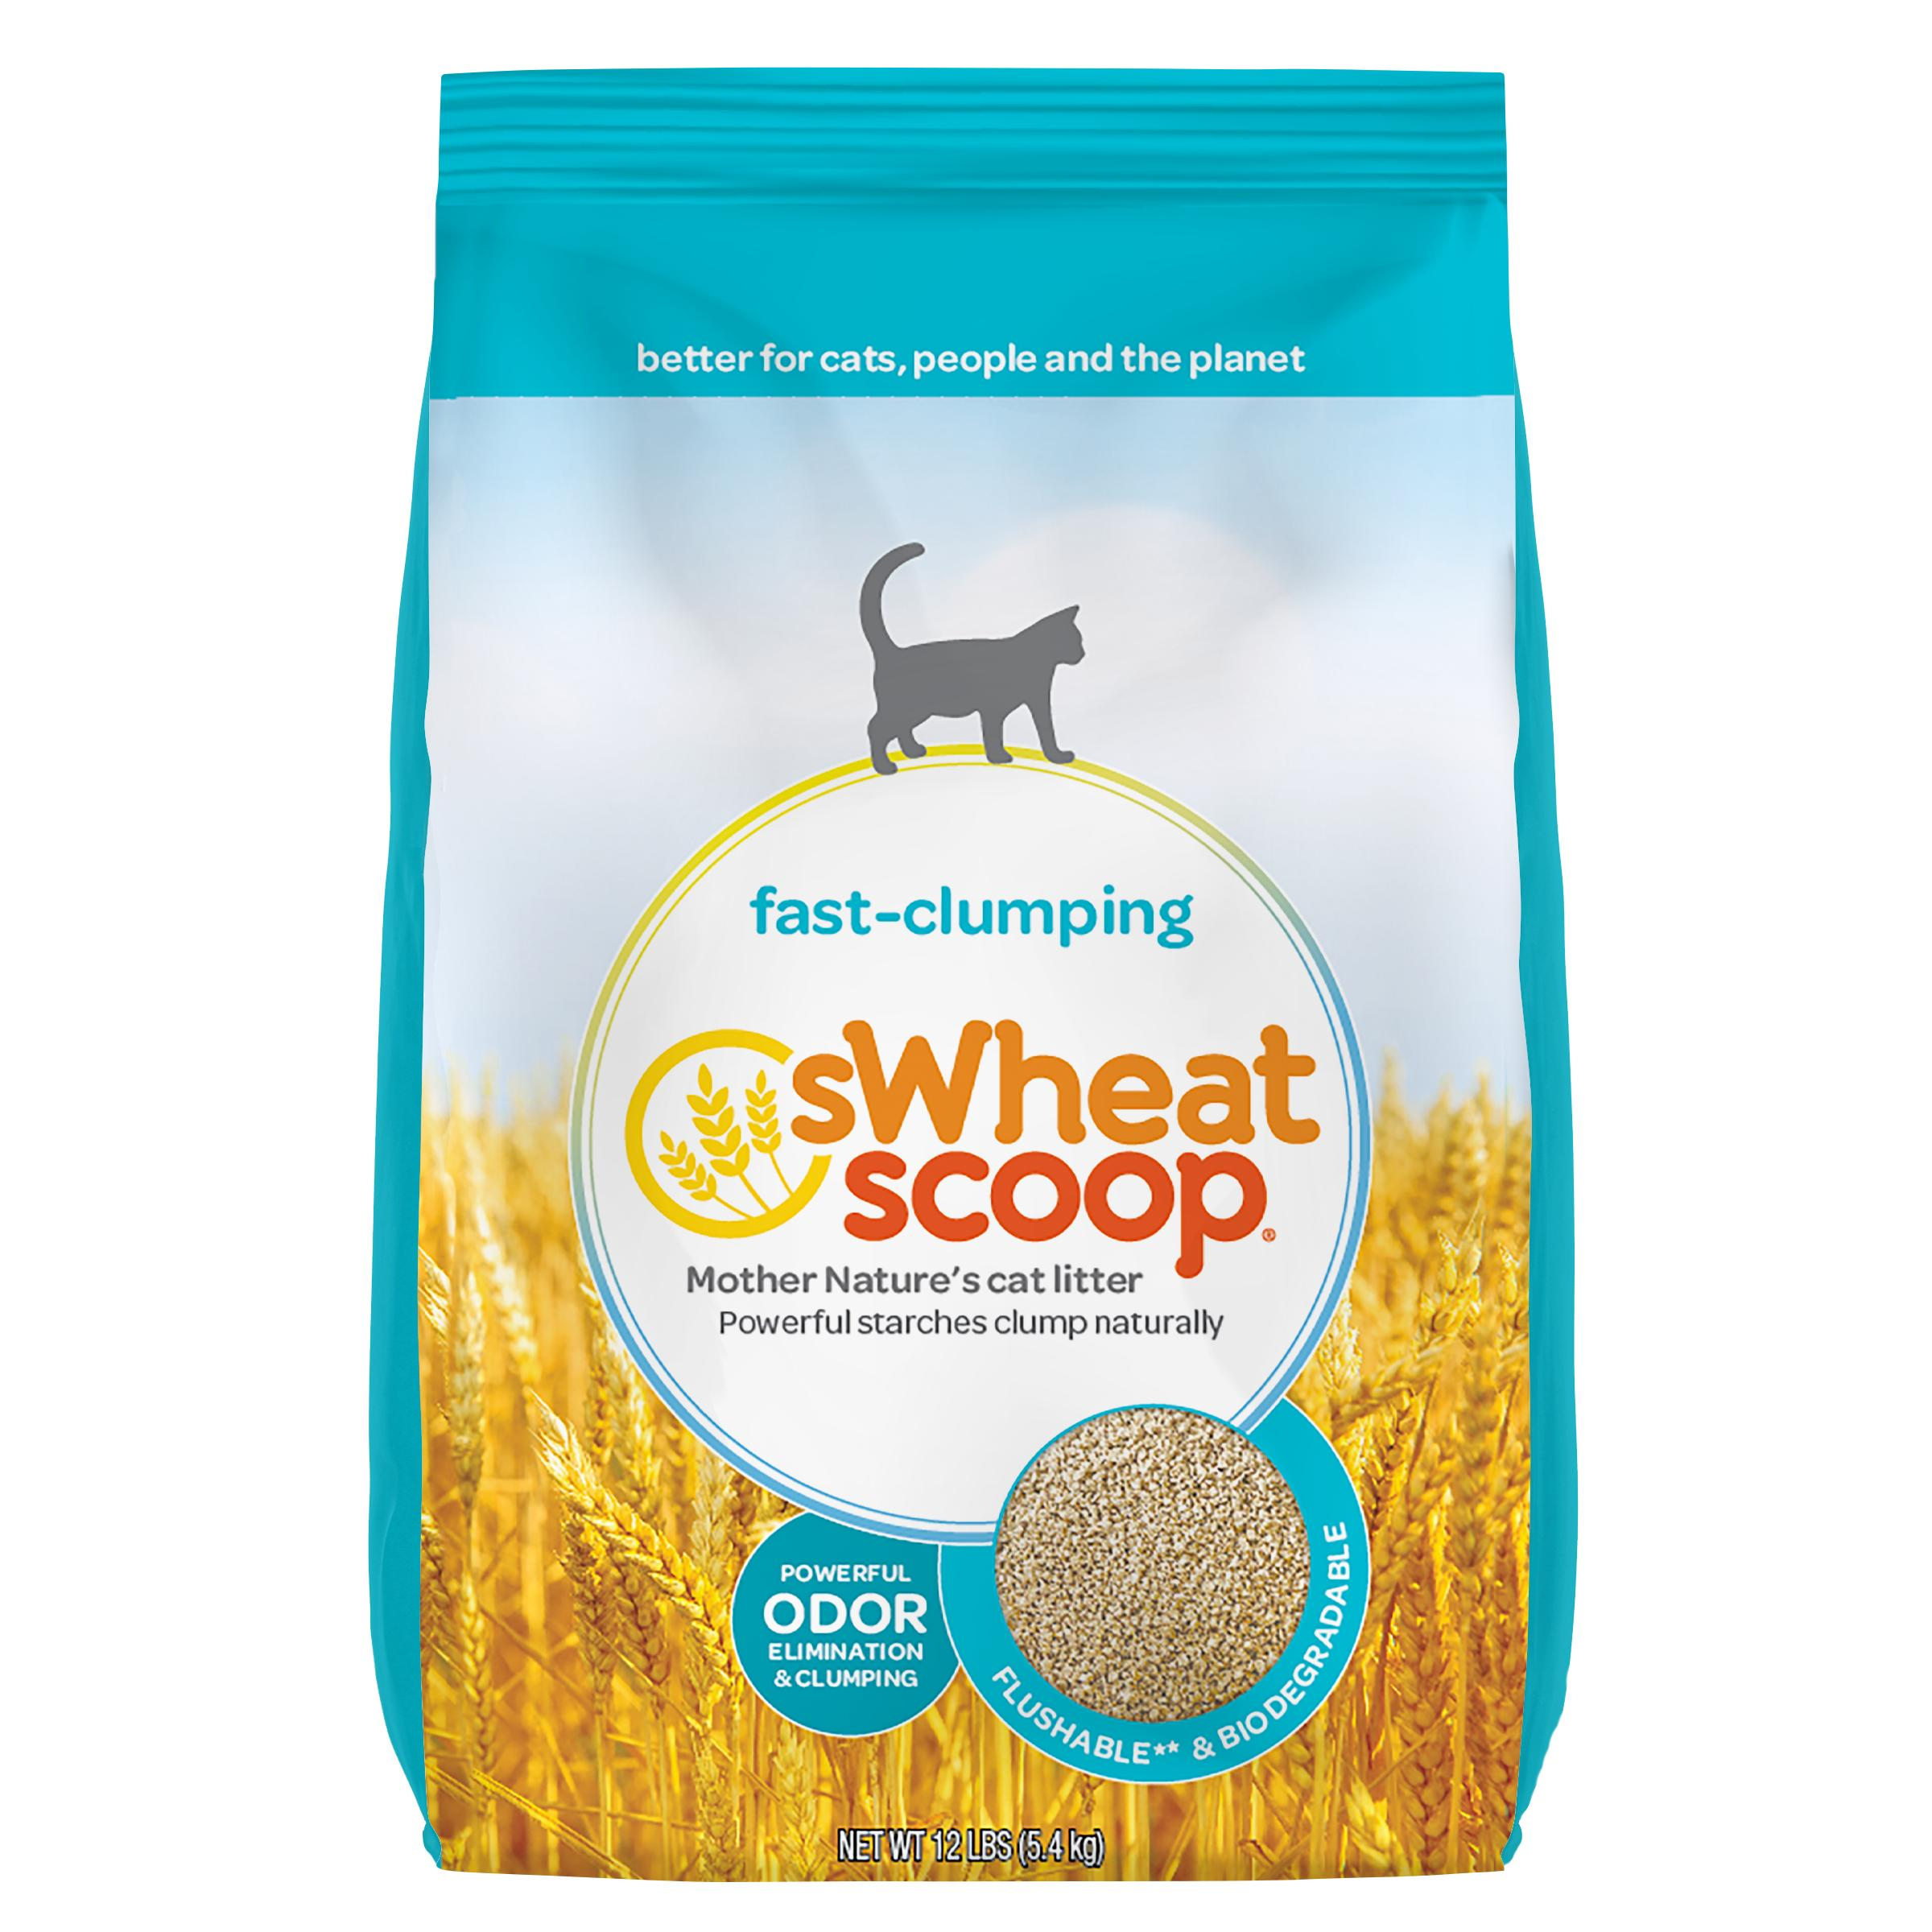 sWheat Scoop Natural Fast-Clumping Wheat Cat Litter Image